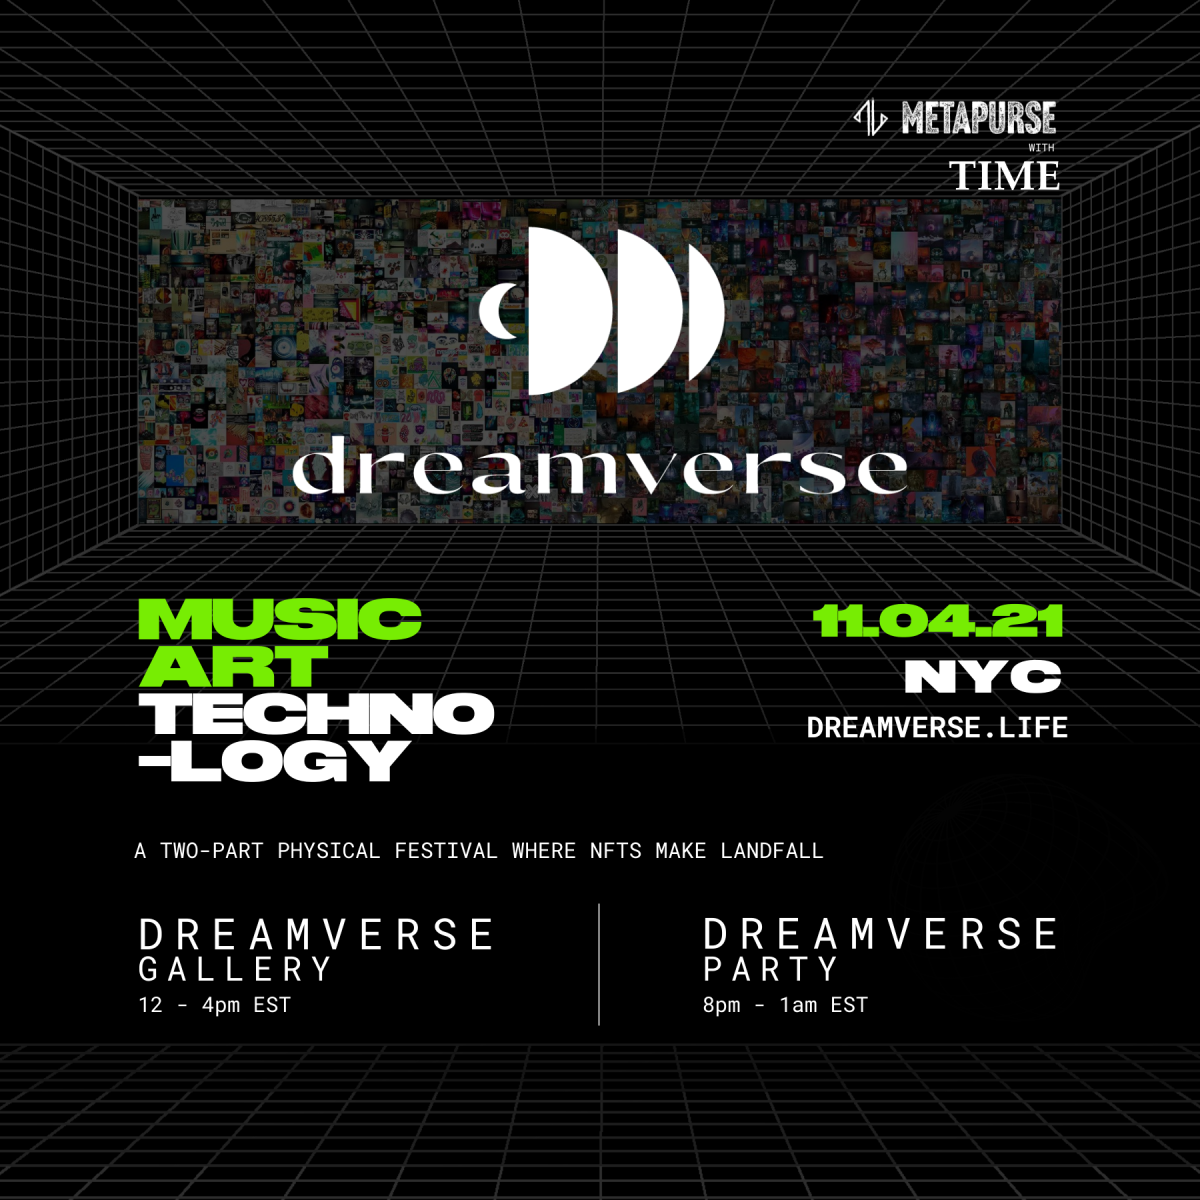 Dreamverse is part NFT gallery, part music festival in a one-of-a-kind hybrid physical and digital experience.